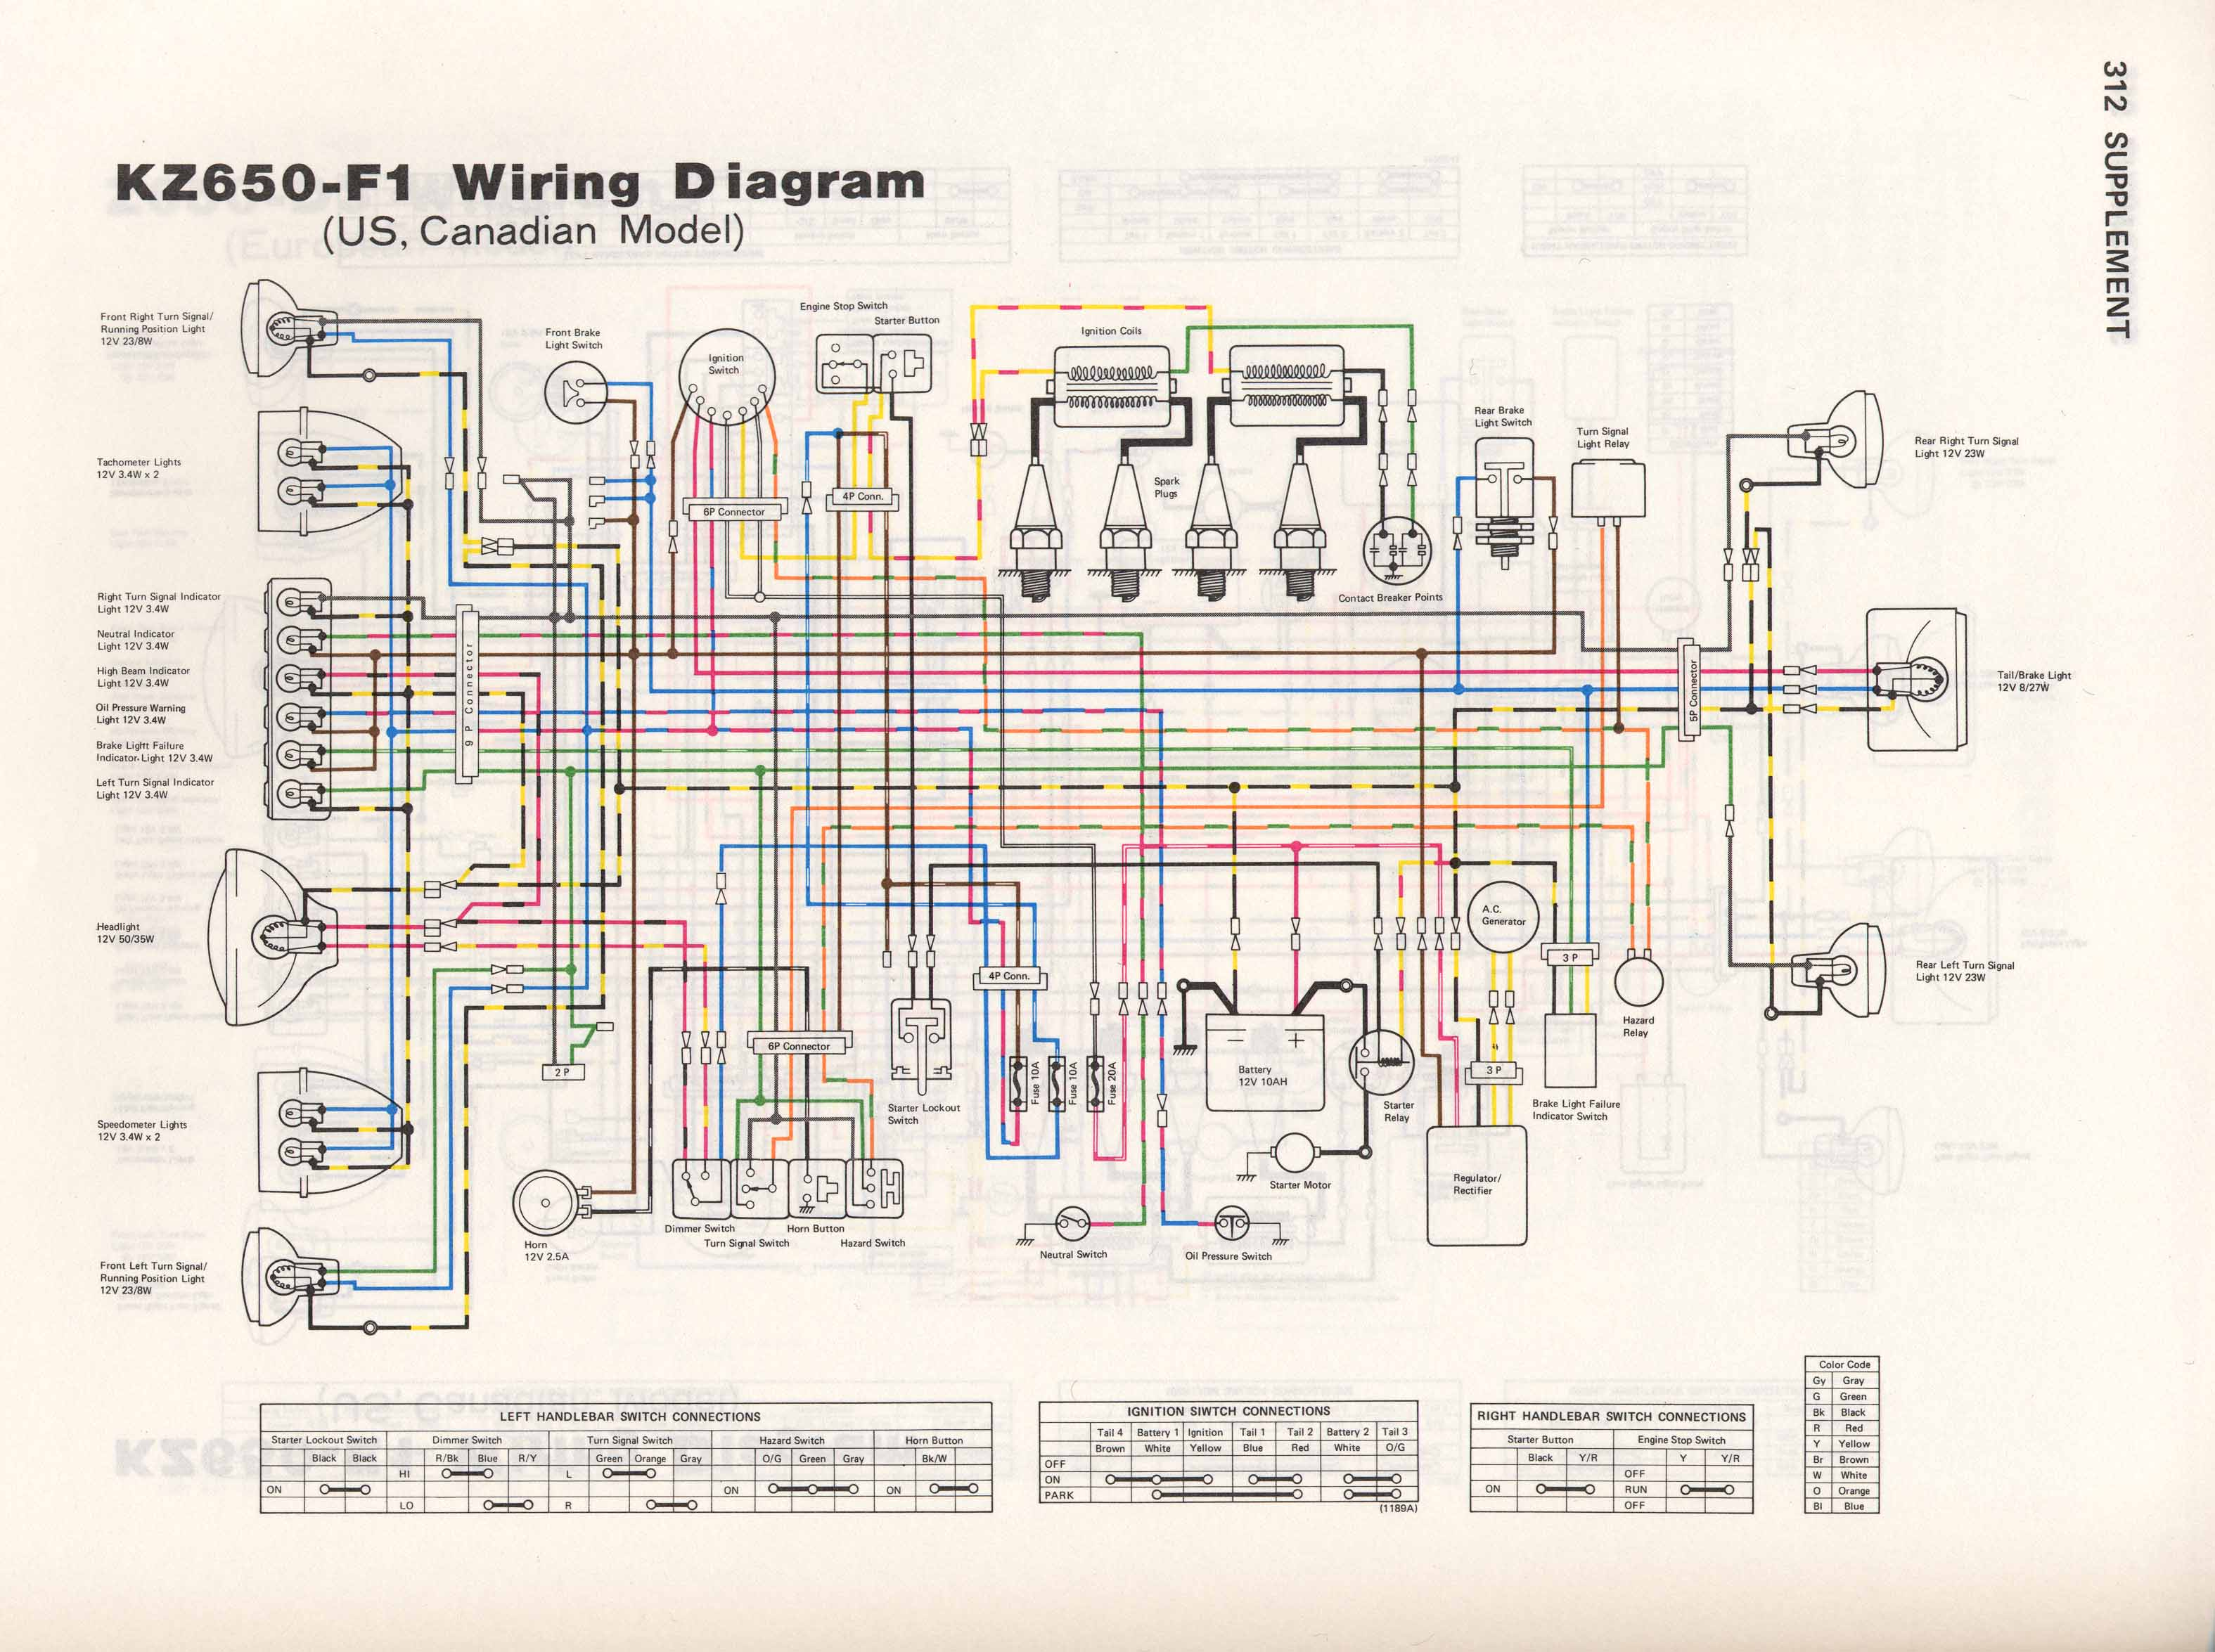 kawasaki kz550 easy wiring diagram - wiring diagram 1982 kz650 wiring diagram